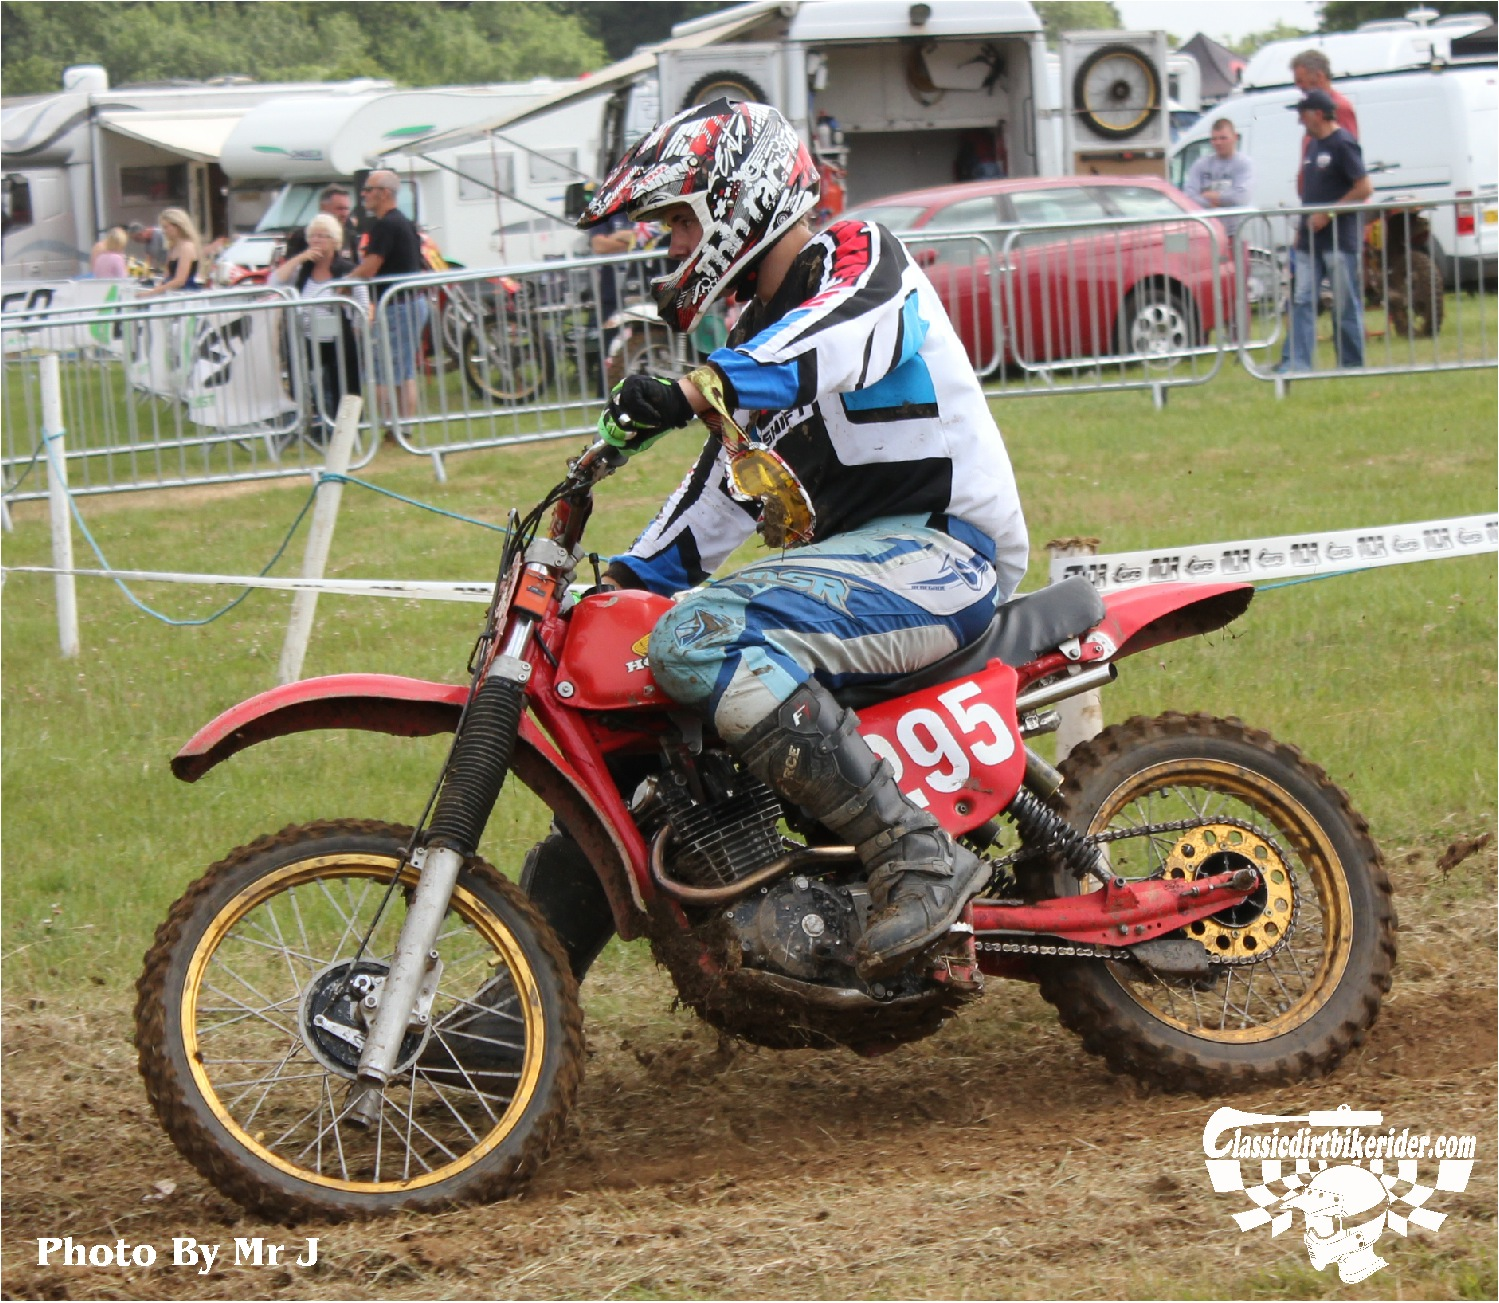 king of the castle 2015 photos Farleigh Castle twinshock motocross classicdirtbikerider.com 31